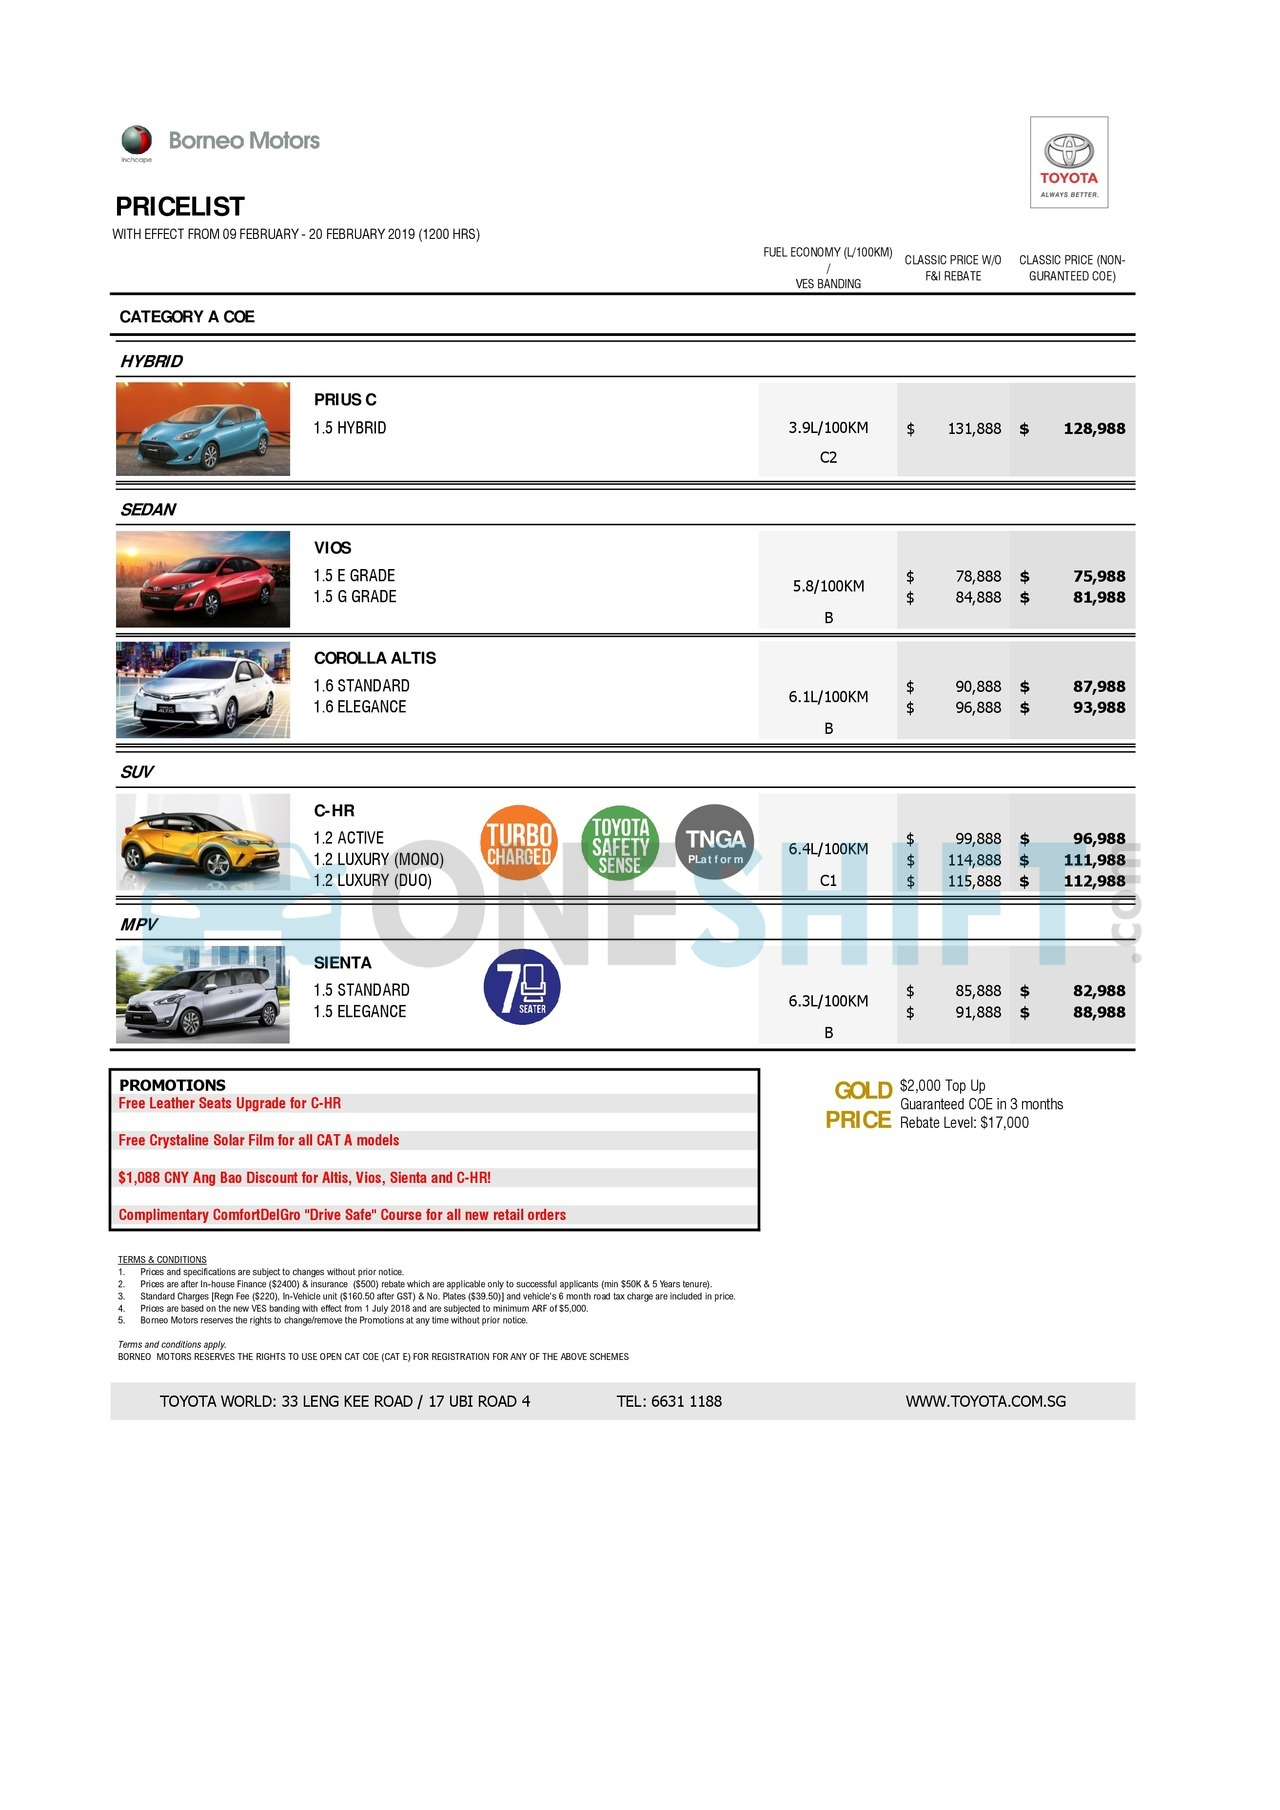 toyota Price List 2-11-2019 Page 1